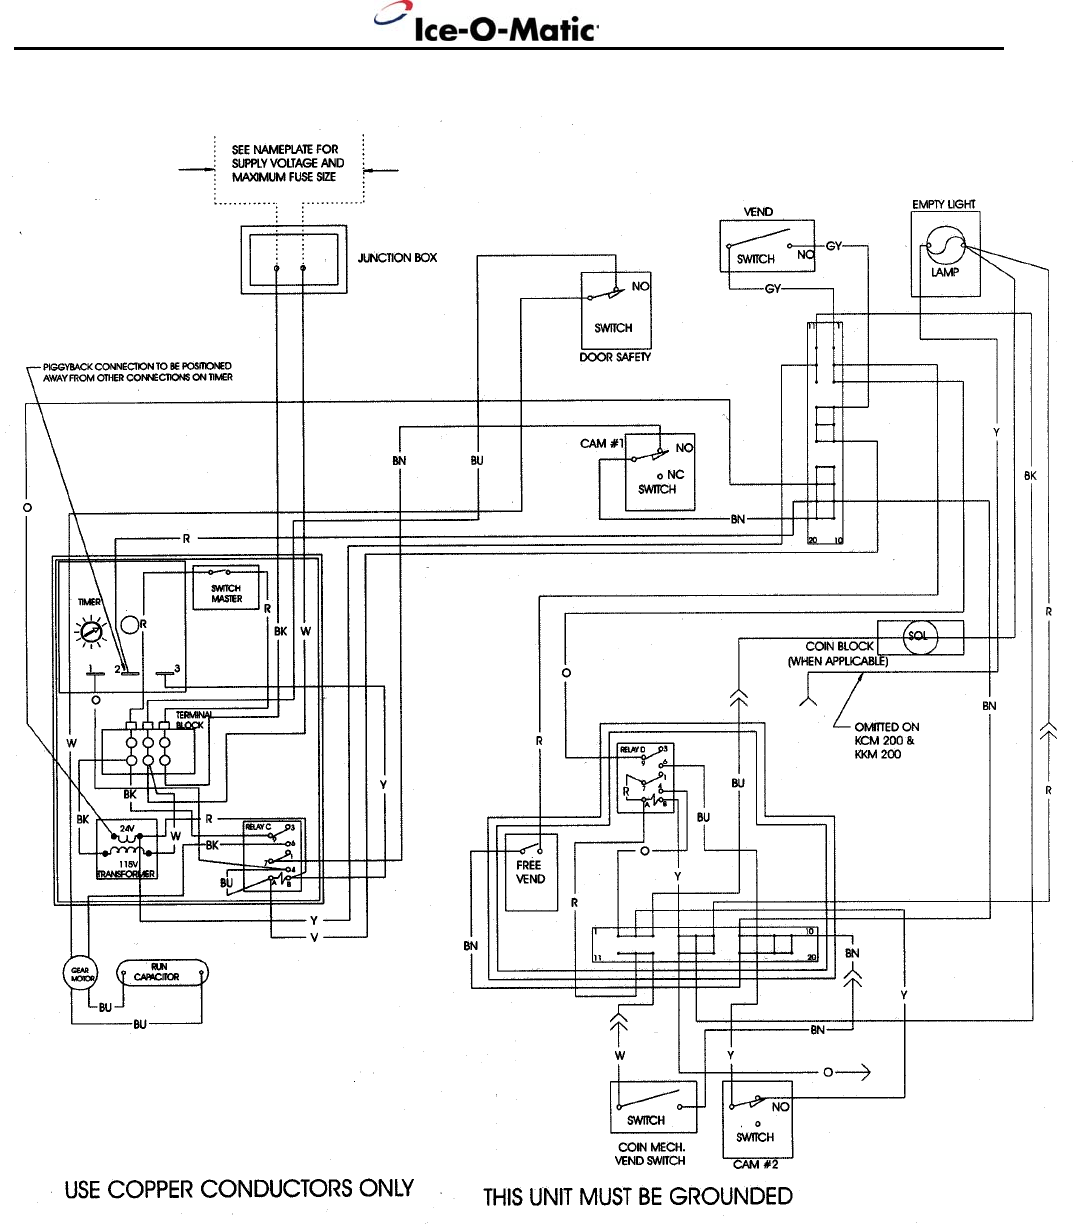 Wiring Diagram On An Older Model Ice O Matic : 44 Wiring